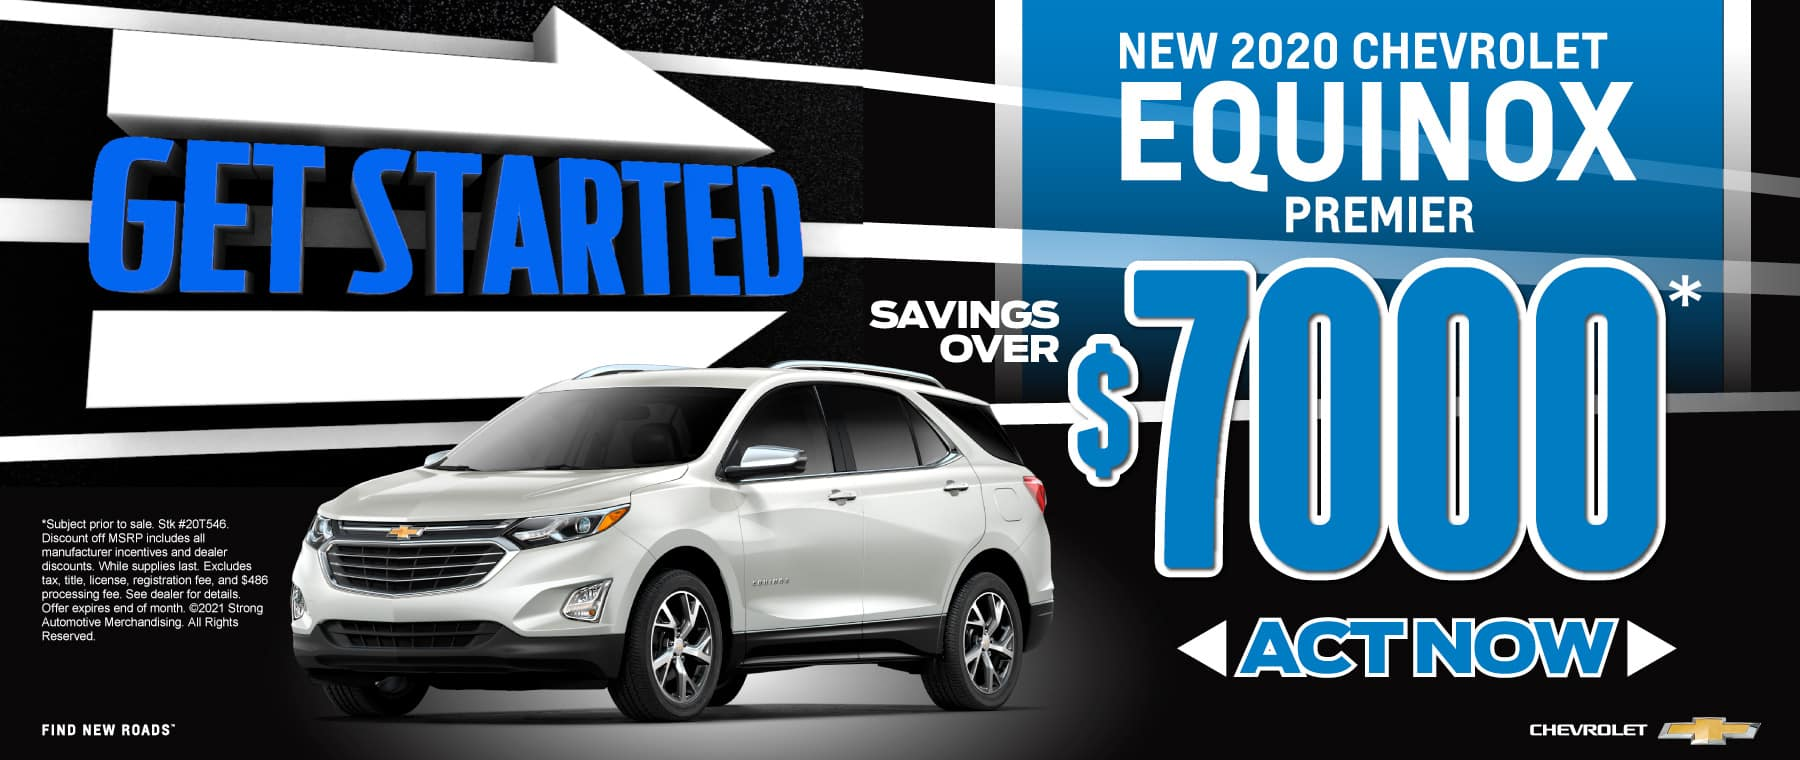 New 2020 Chevy Equinox - $7000 off - Act now